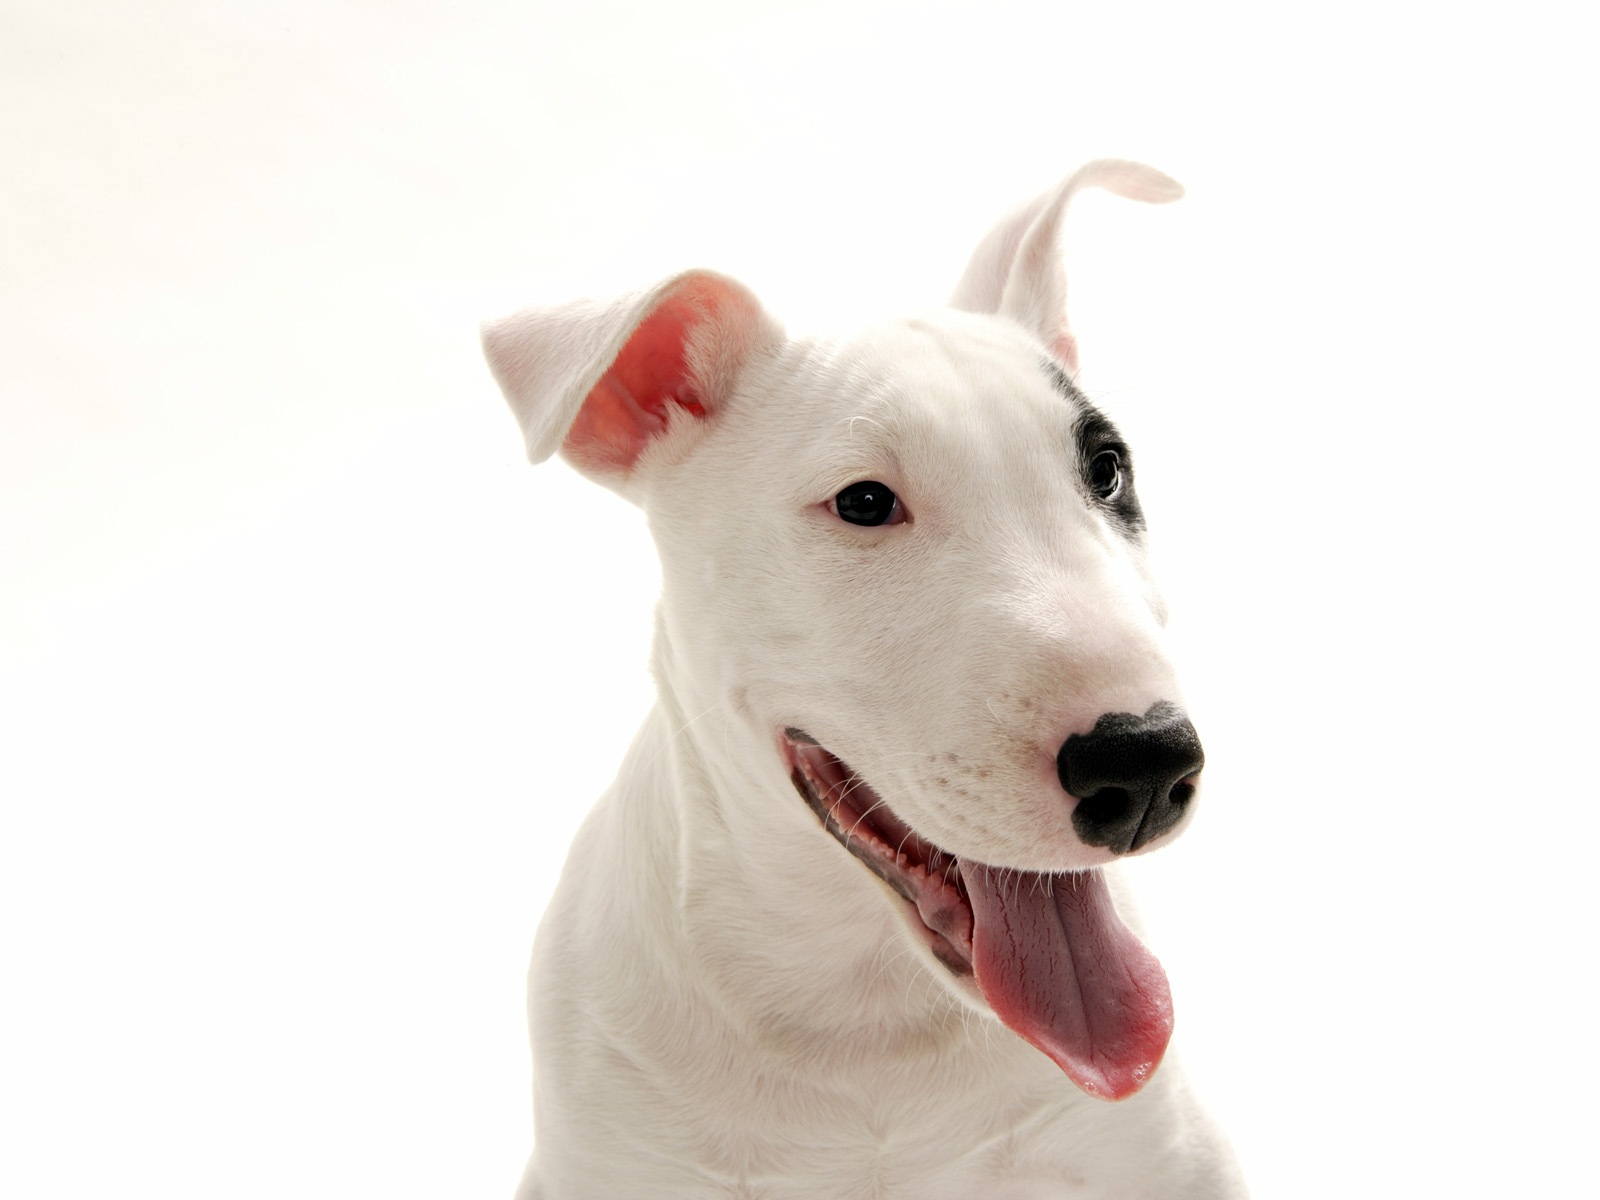 bull terrier picture n 243 s os cachorros no jap 227 o bull terrier 6248